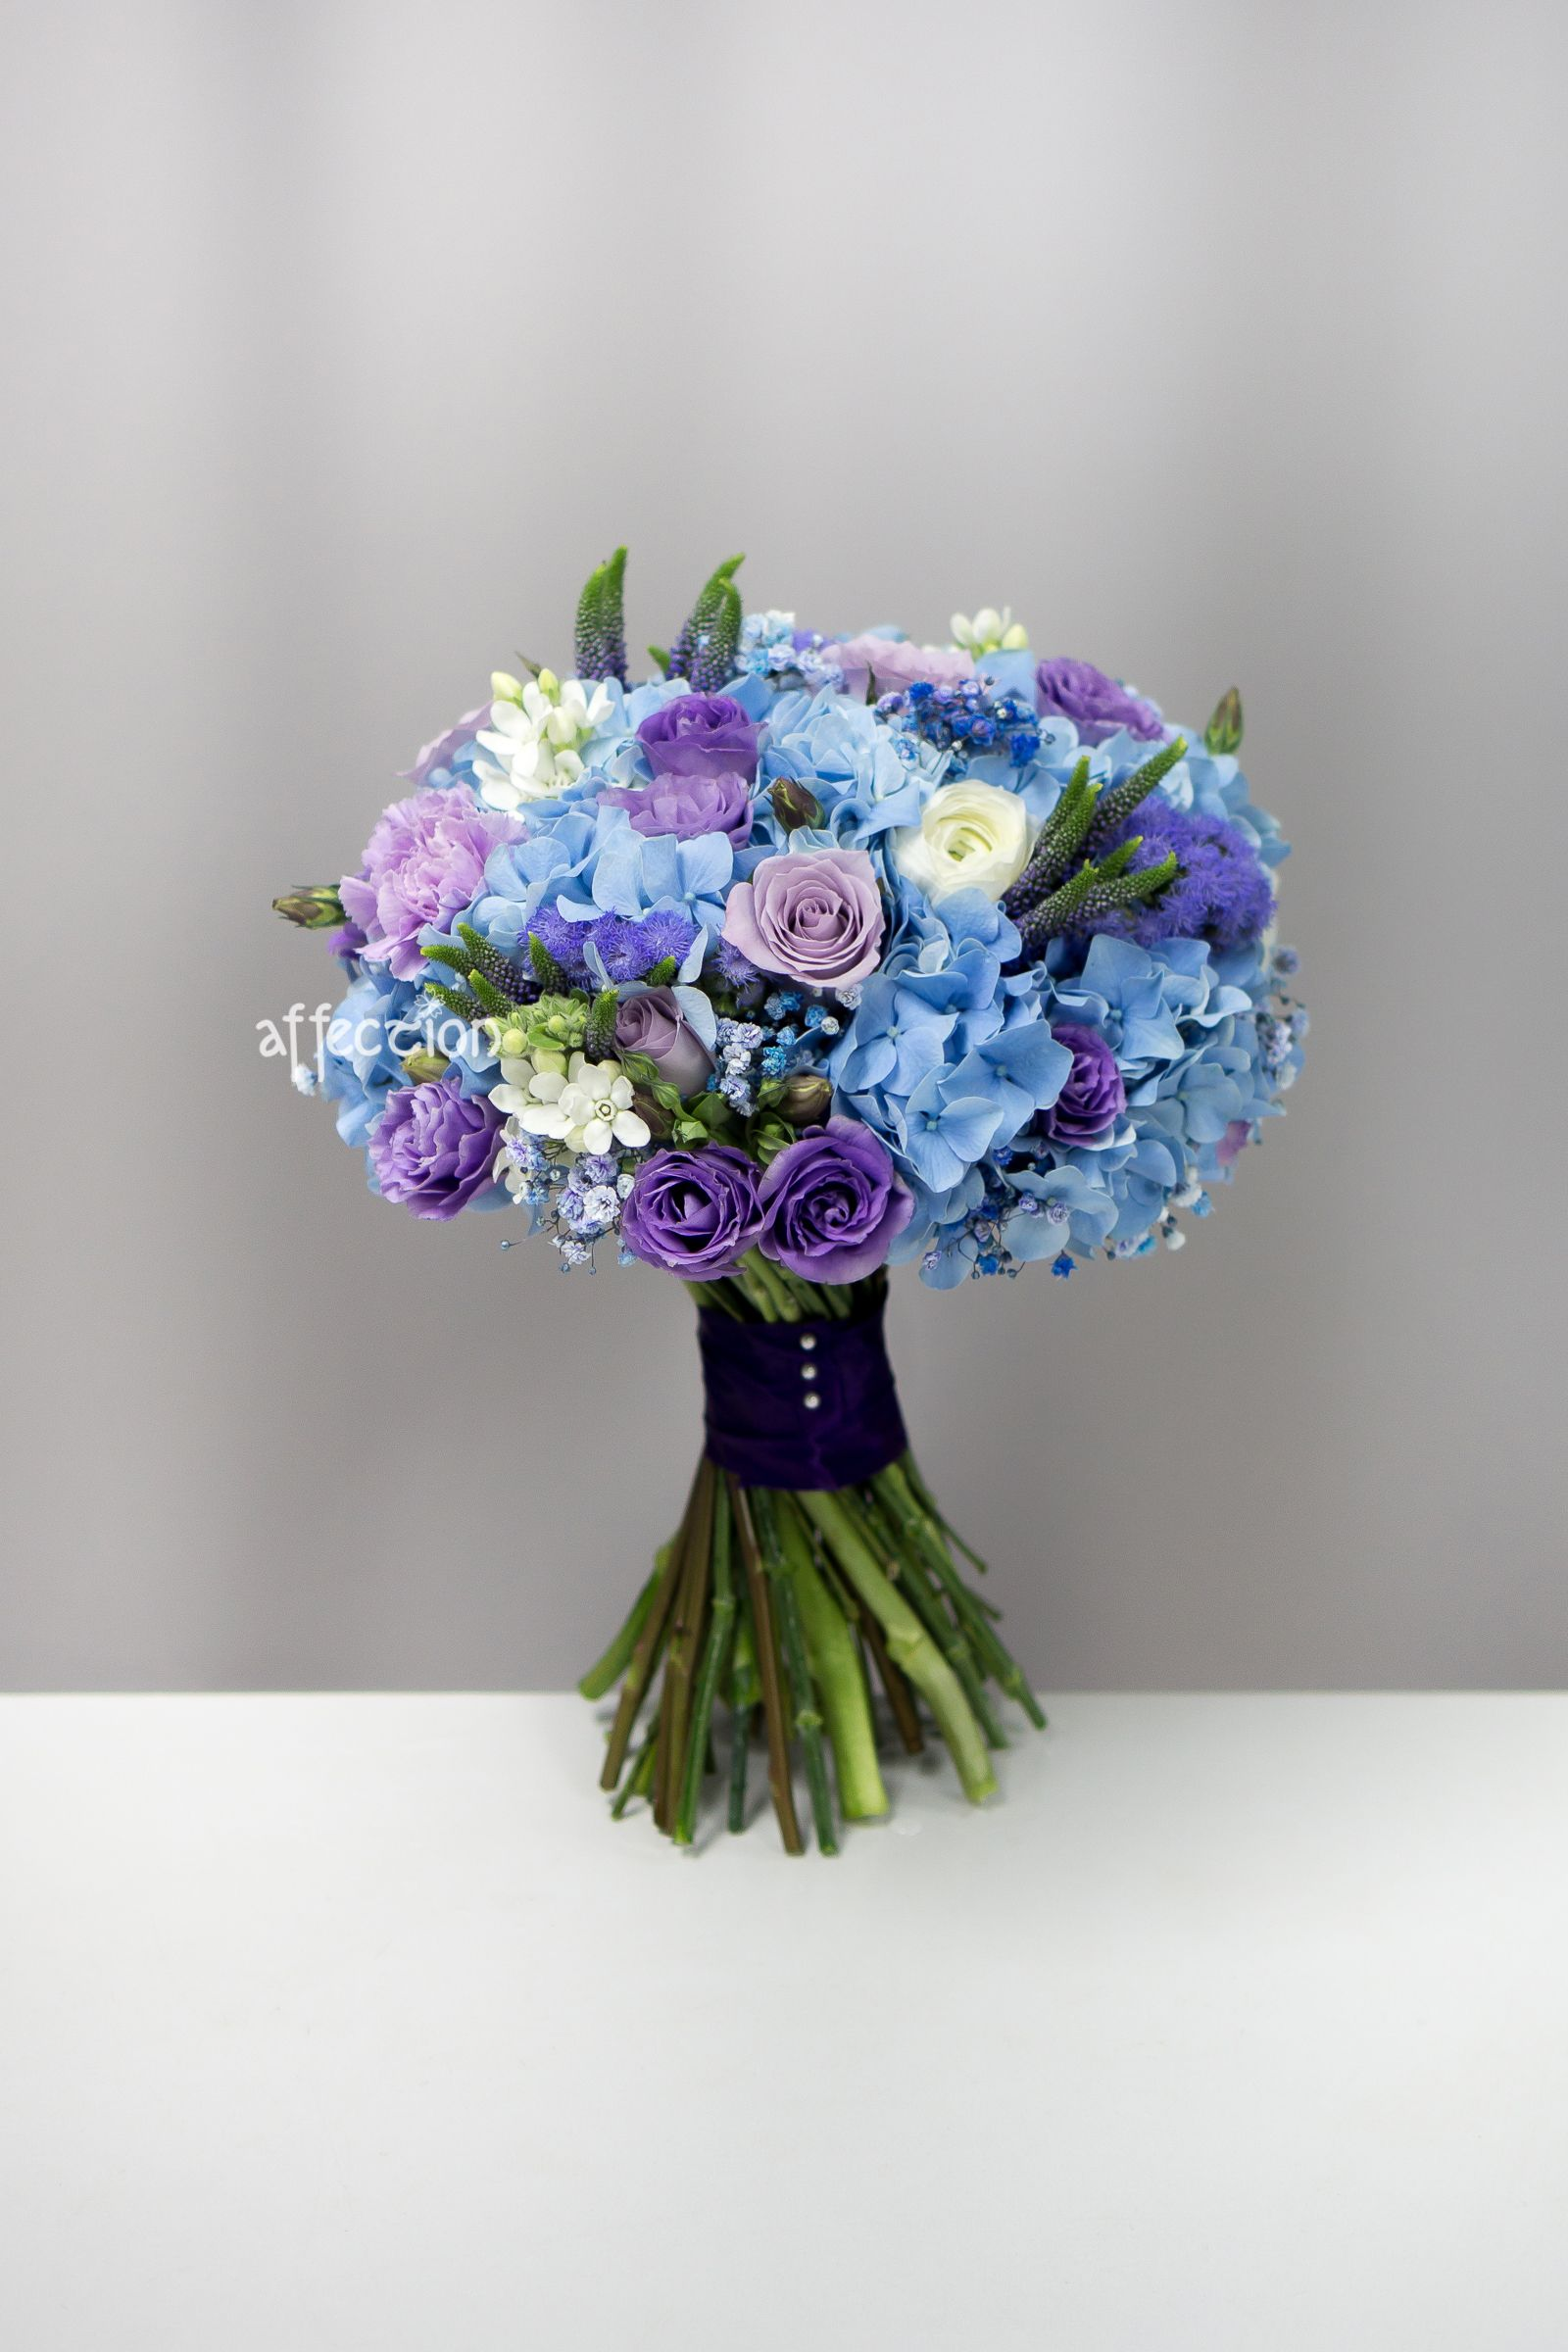 Fresh Flower Wedding Bouquet | 꽃 | Pinterest | Fresh flowers ...